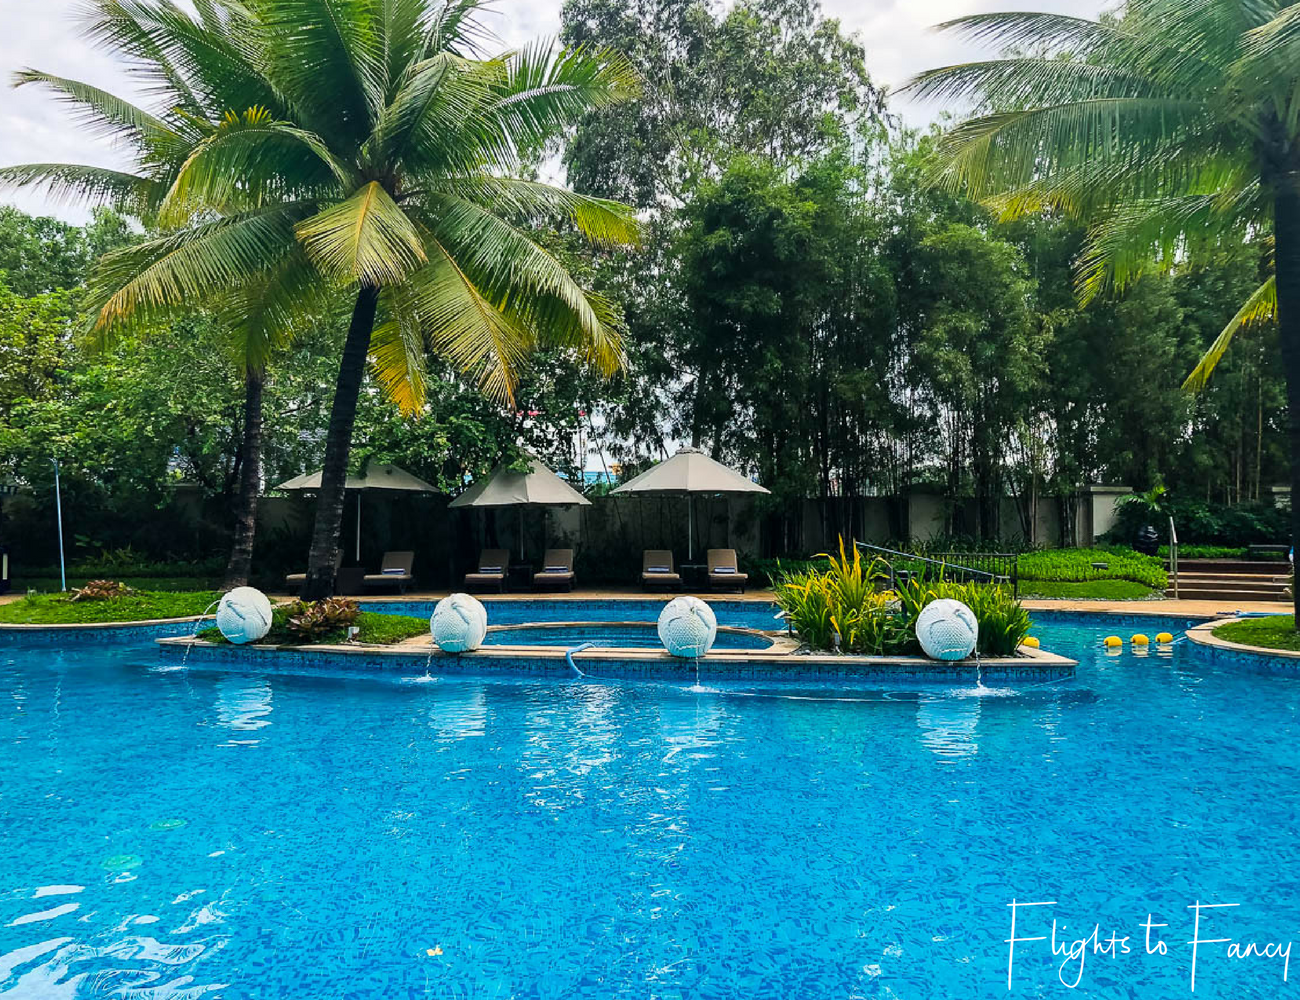 Flights To Fancy @ Radisson Blu Cebu City. Pool